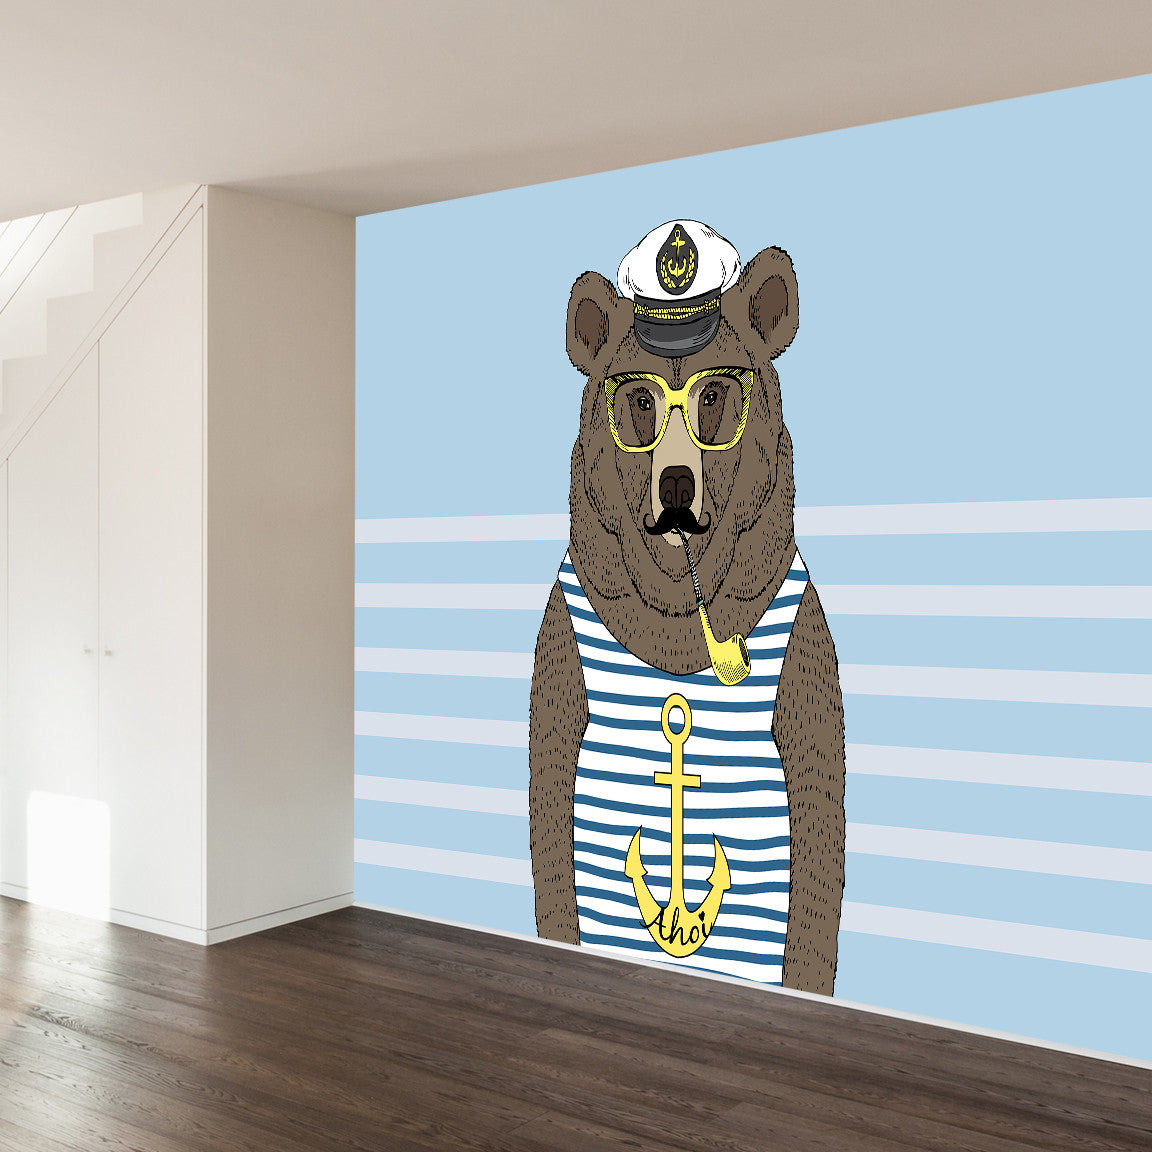 Sailor Barry Wall Mural image